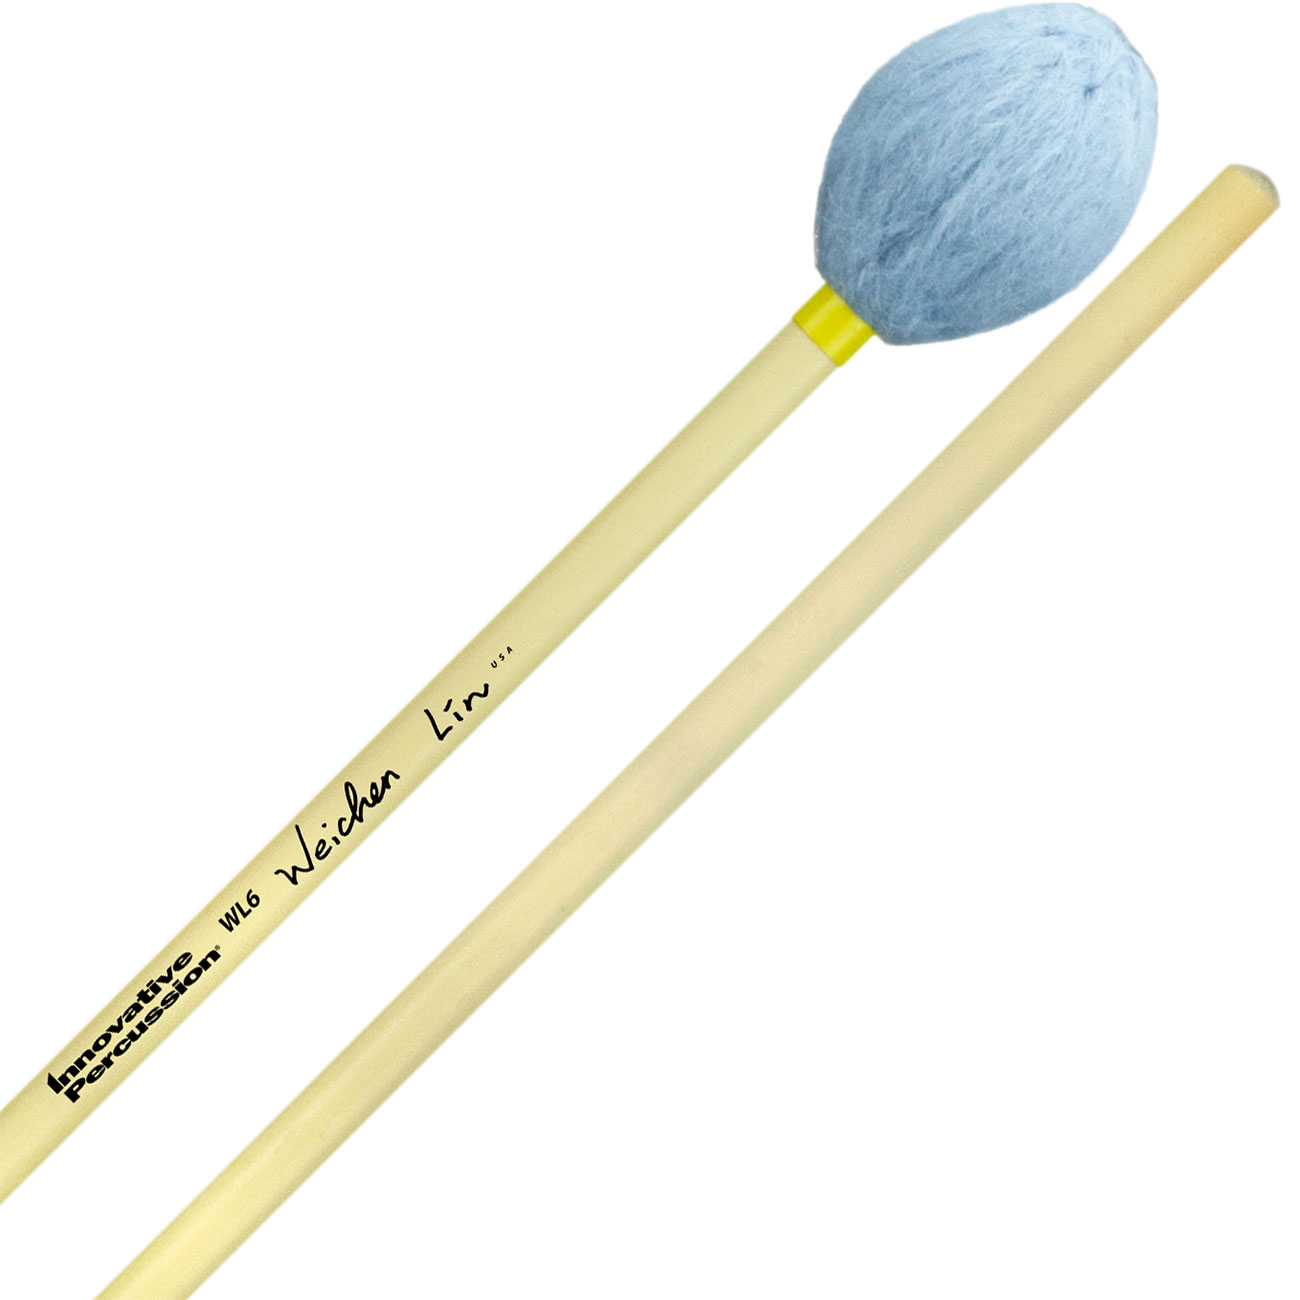 Innovative Percussion Wei-Chen Lin Signature Hard Marimba Mallets with Rattan Handles